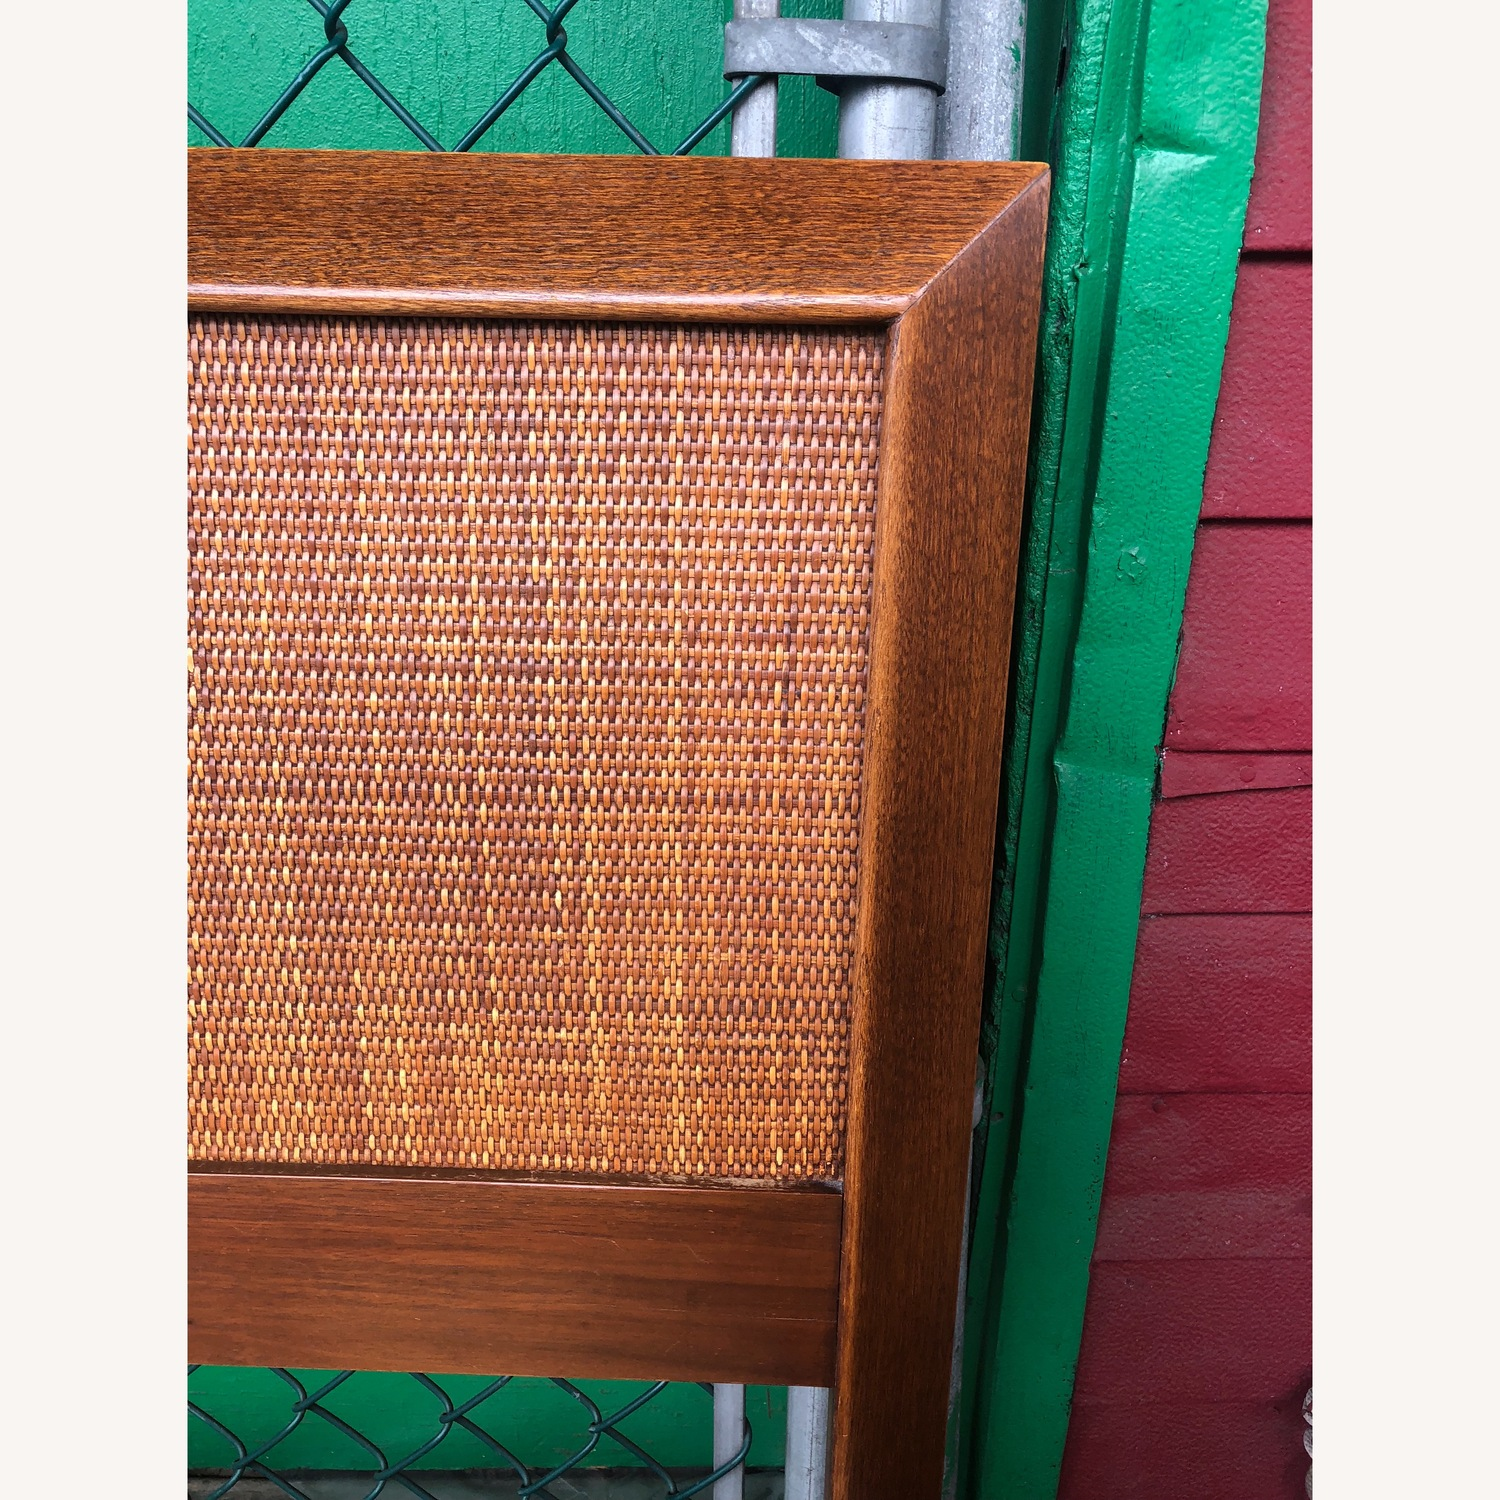 Mid Century Modern king Headboard with Caning - image-3